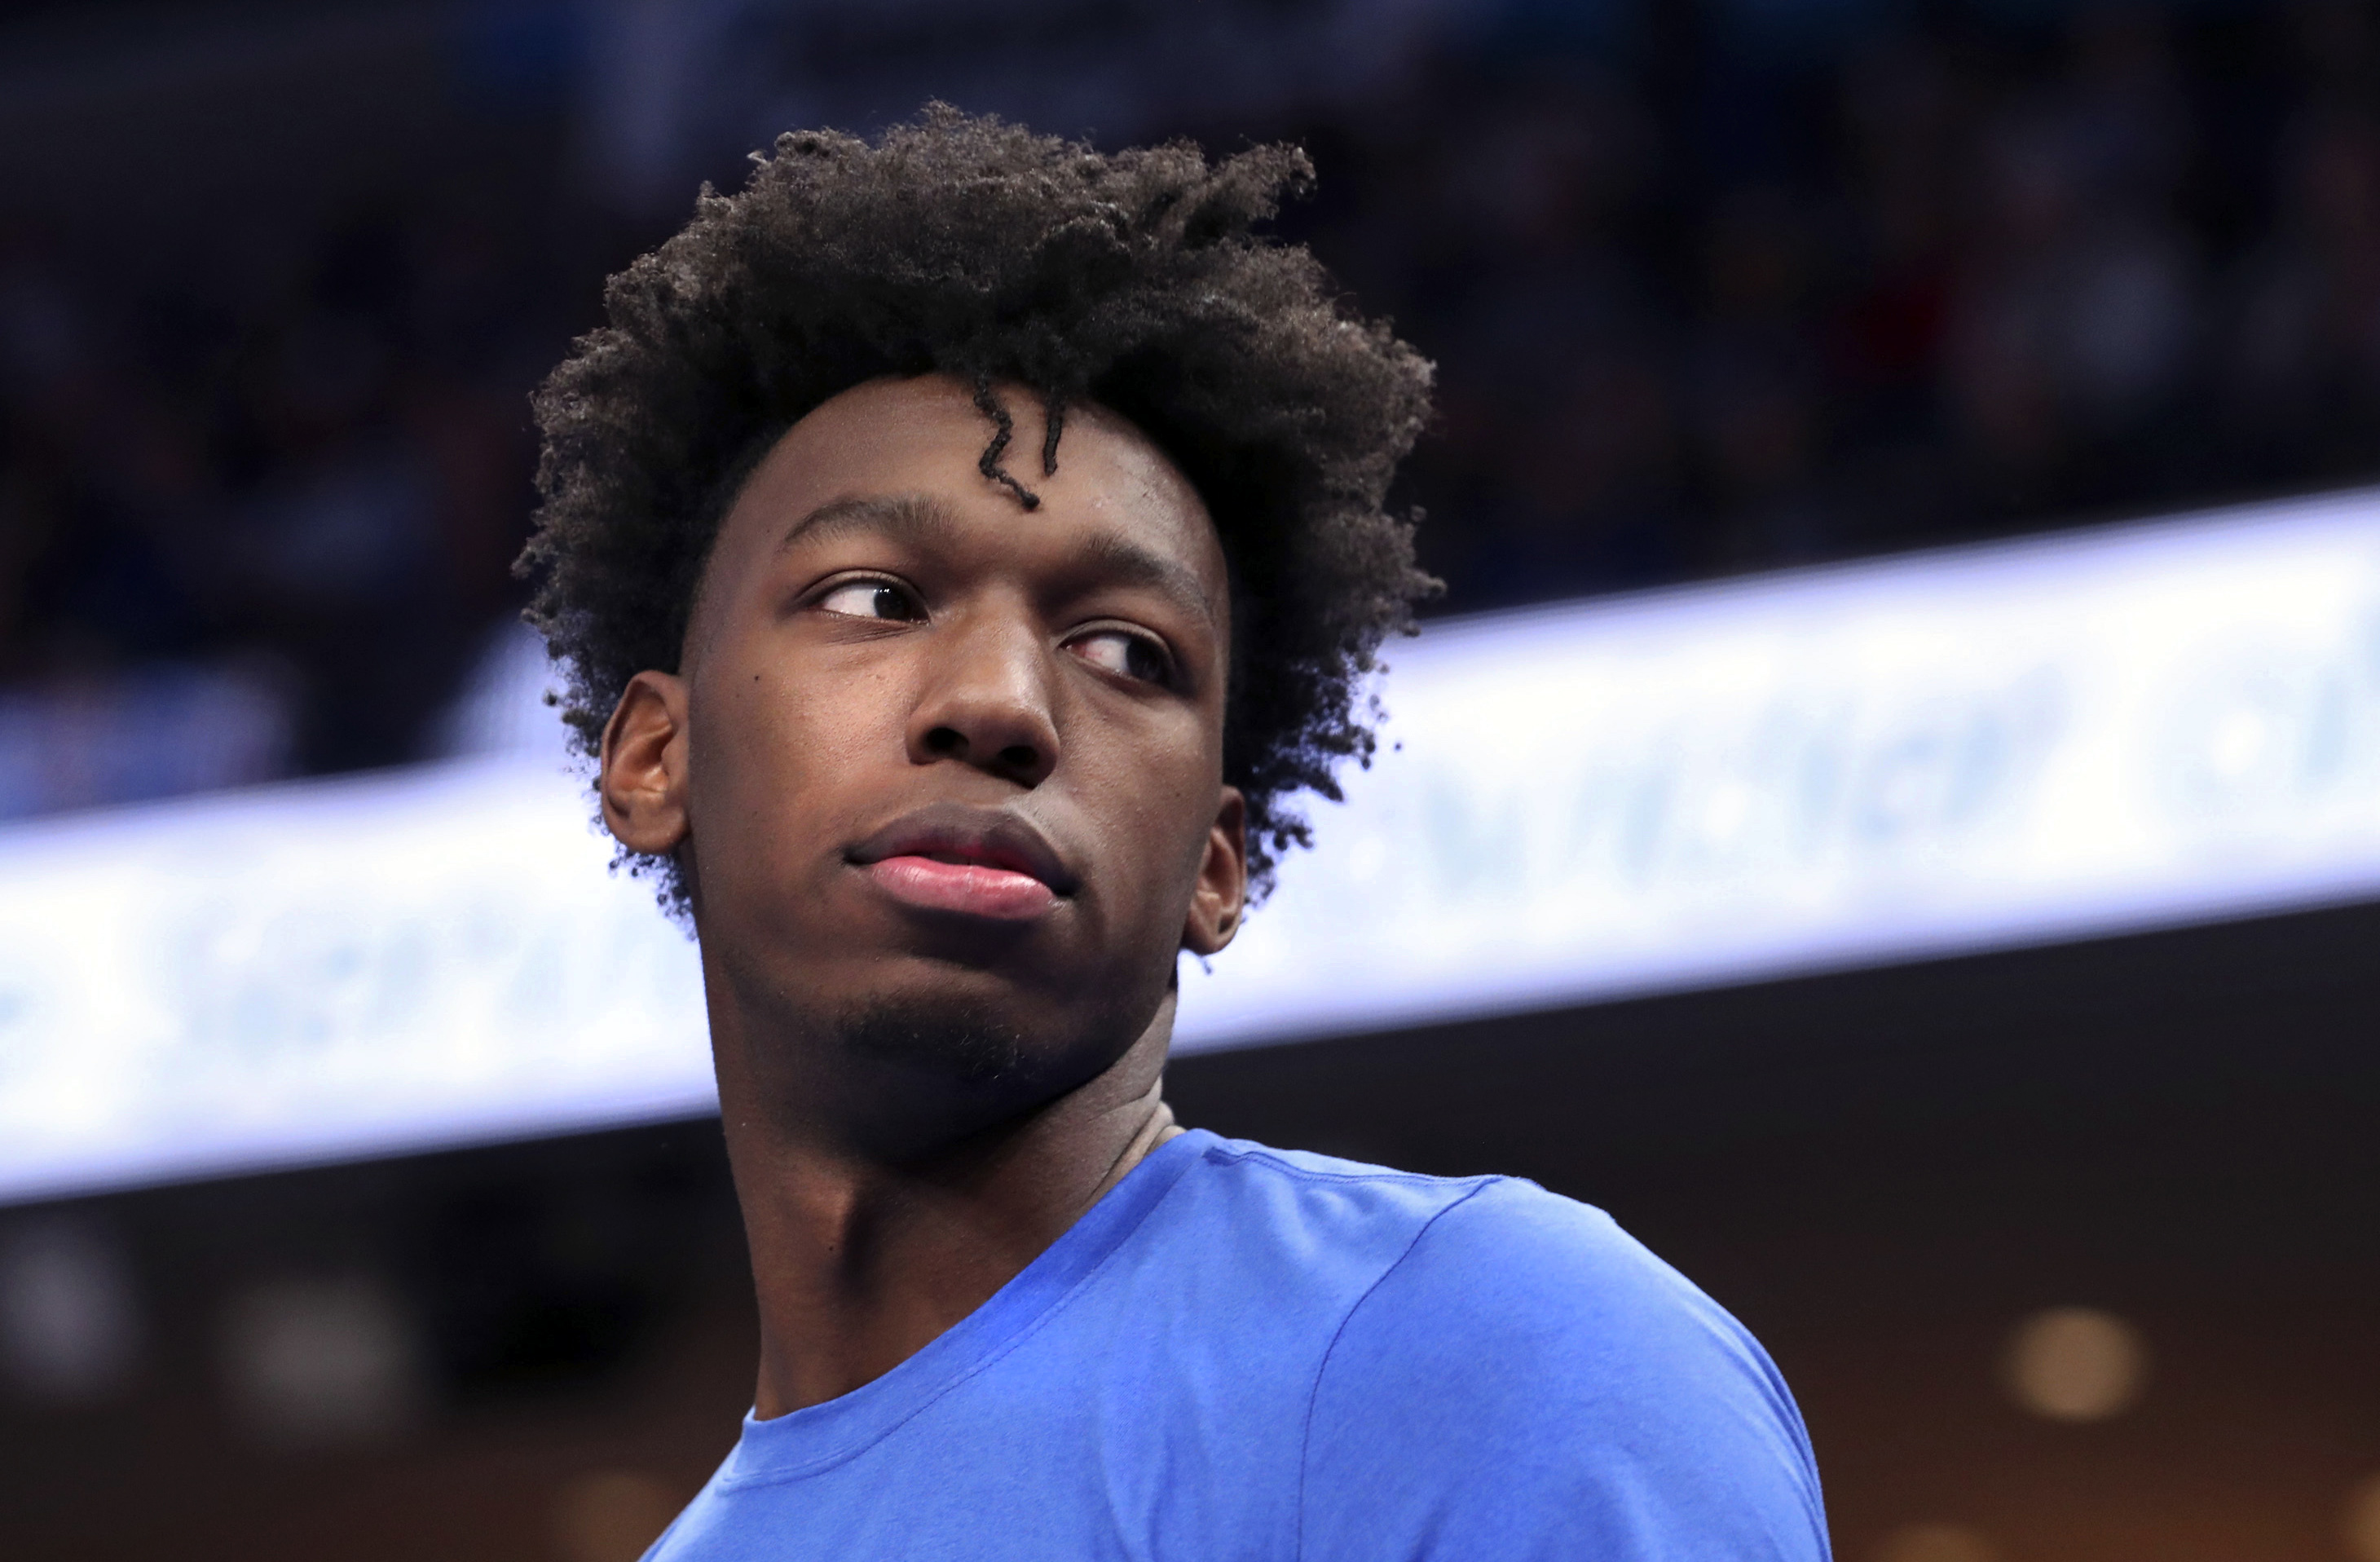 Memphis' James Wiseman says he has withdrawn from school